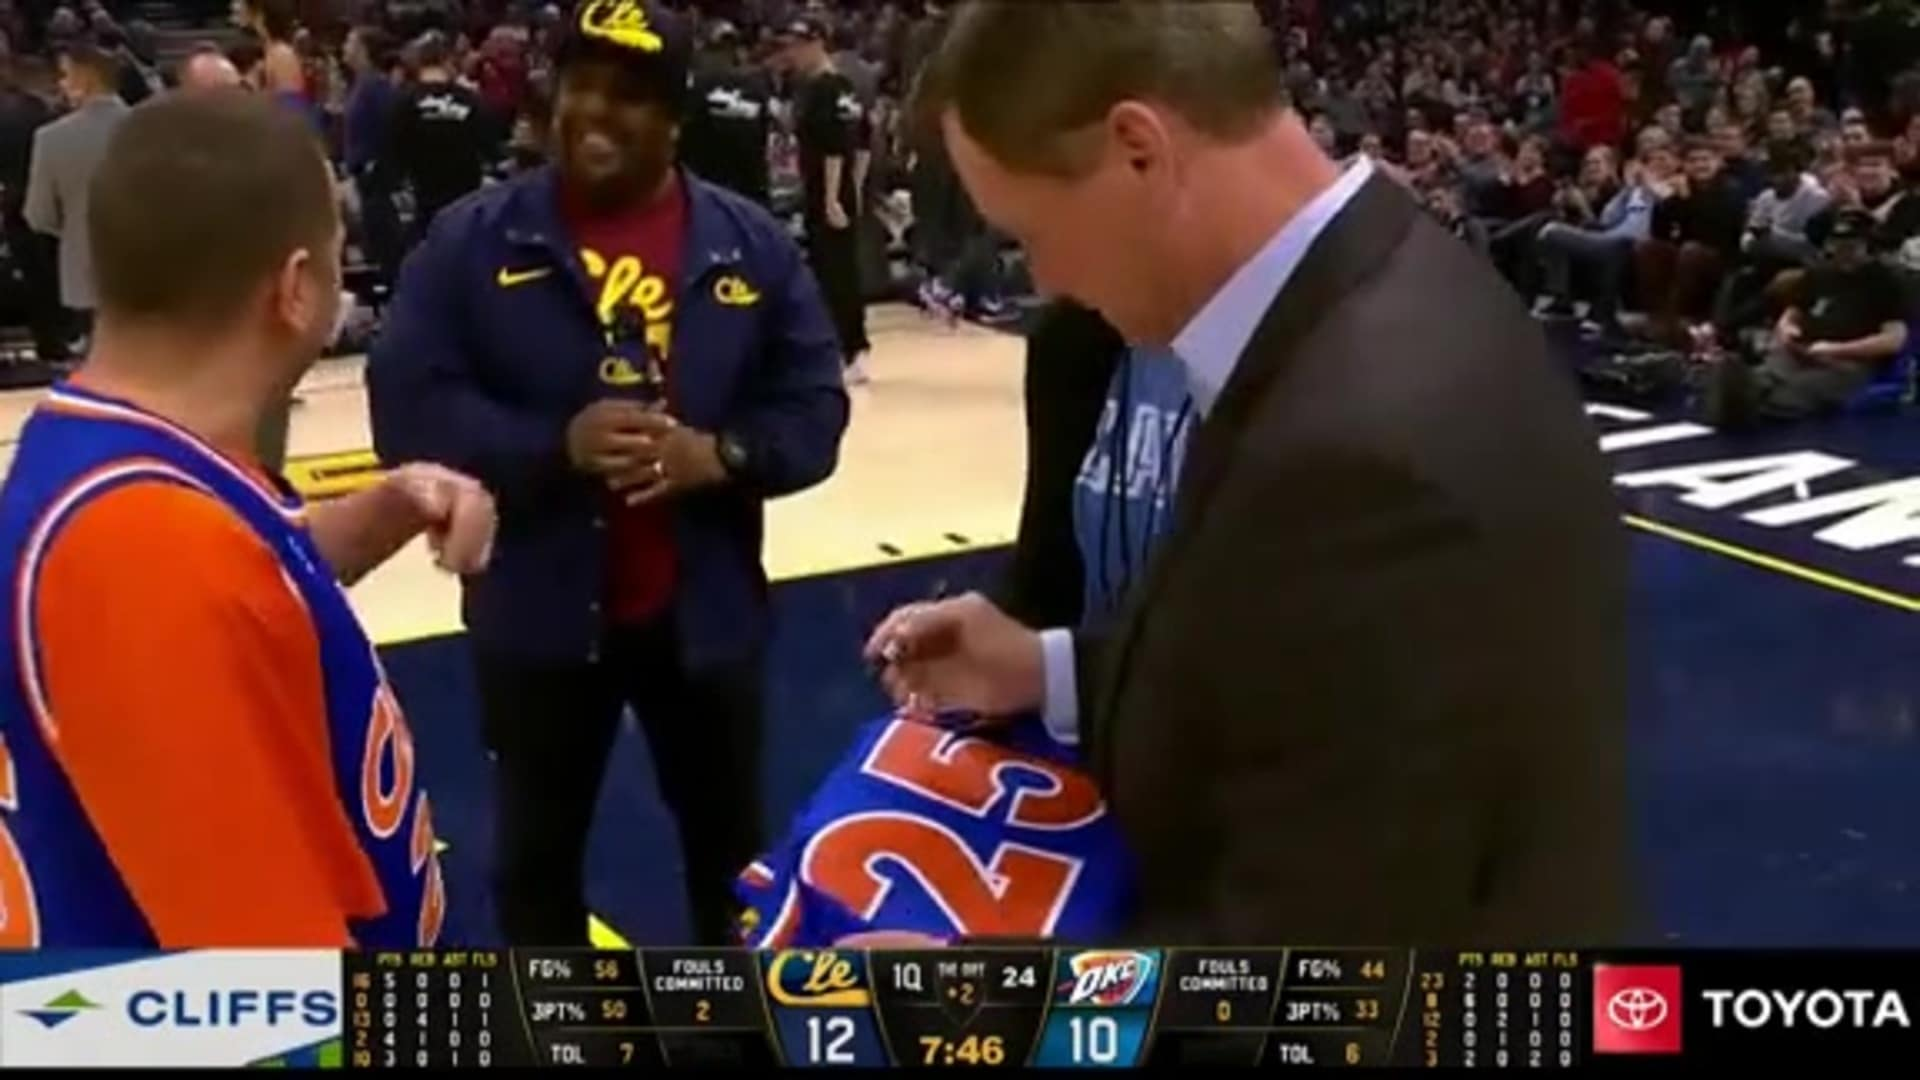 Mark Price Surprises Fan with Signed Jersey